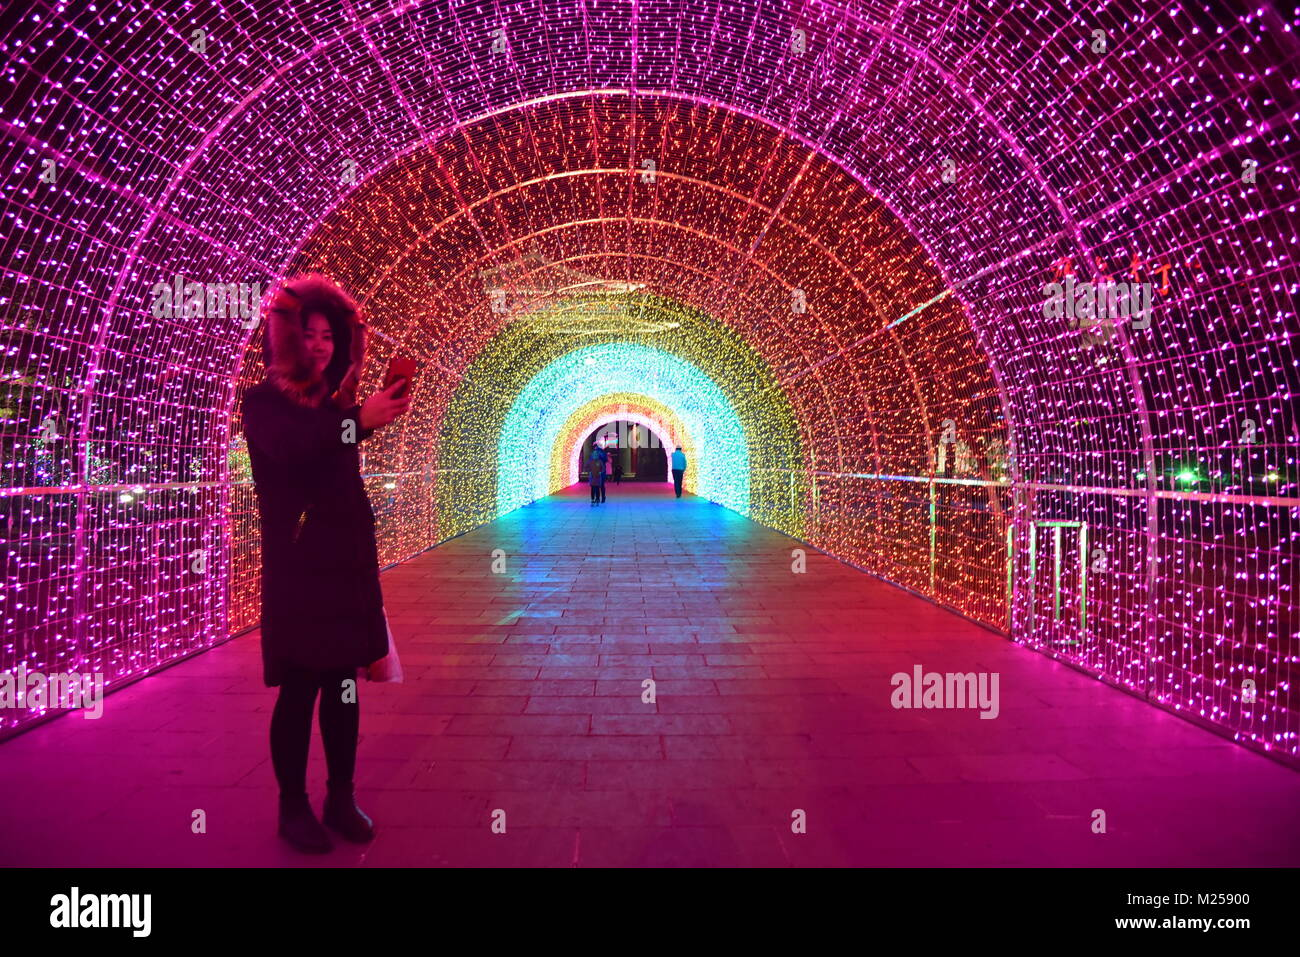 Hohhot, Hohhot, China. 5th Feb, 2018. Hohhot, CHINA-5th February 2018: The 60-meter-long rainbow tunnel can be seen - Stock Image